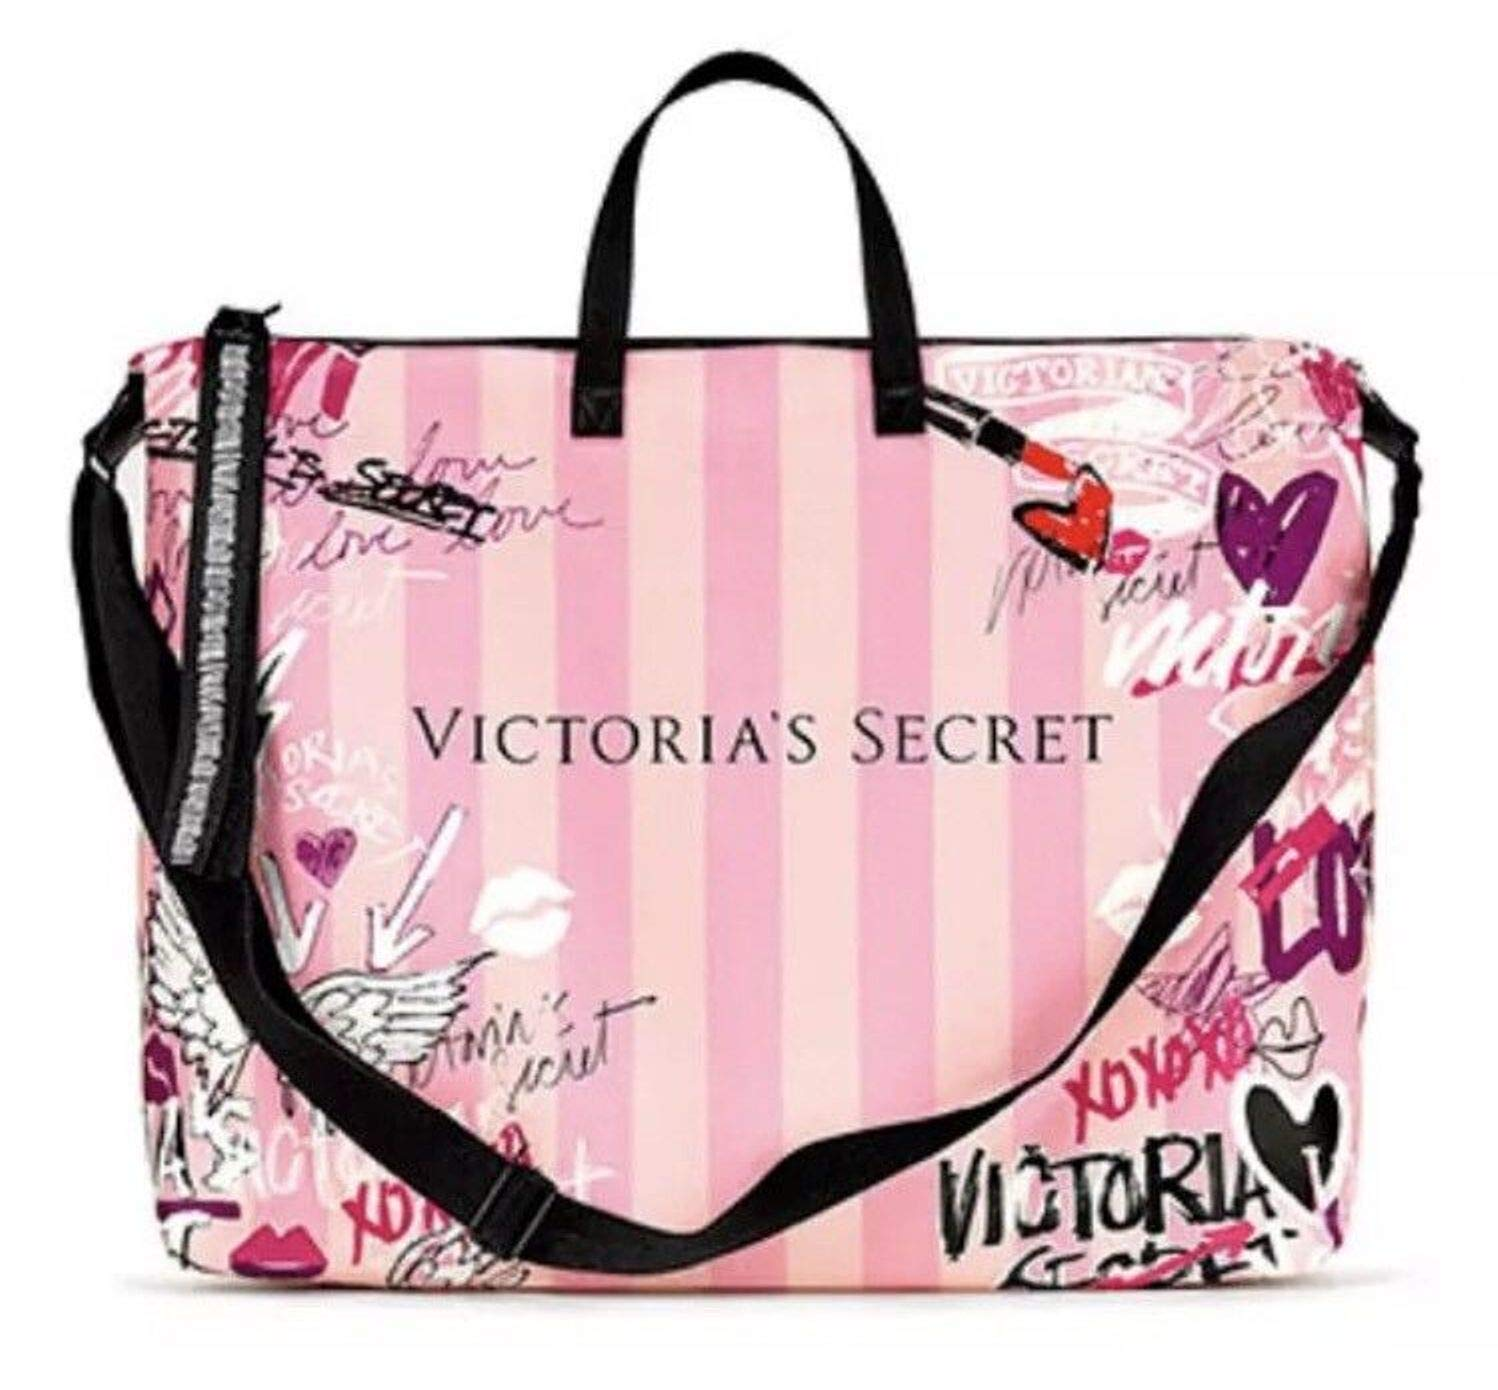 Victoria's Secret Pink Duffle Bag Weekender Tote Graffiti Logo 17x14 Large Size